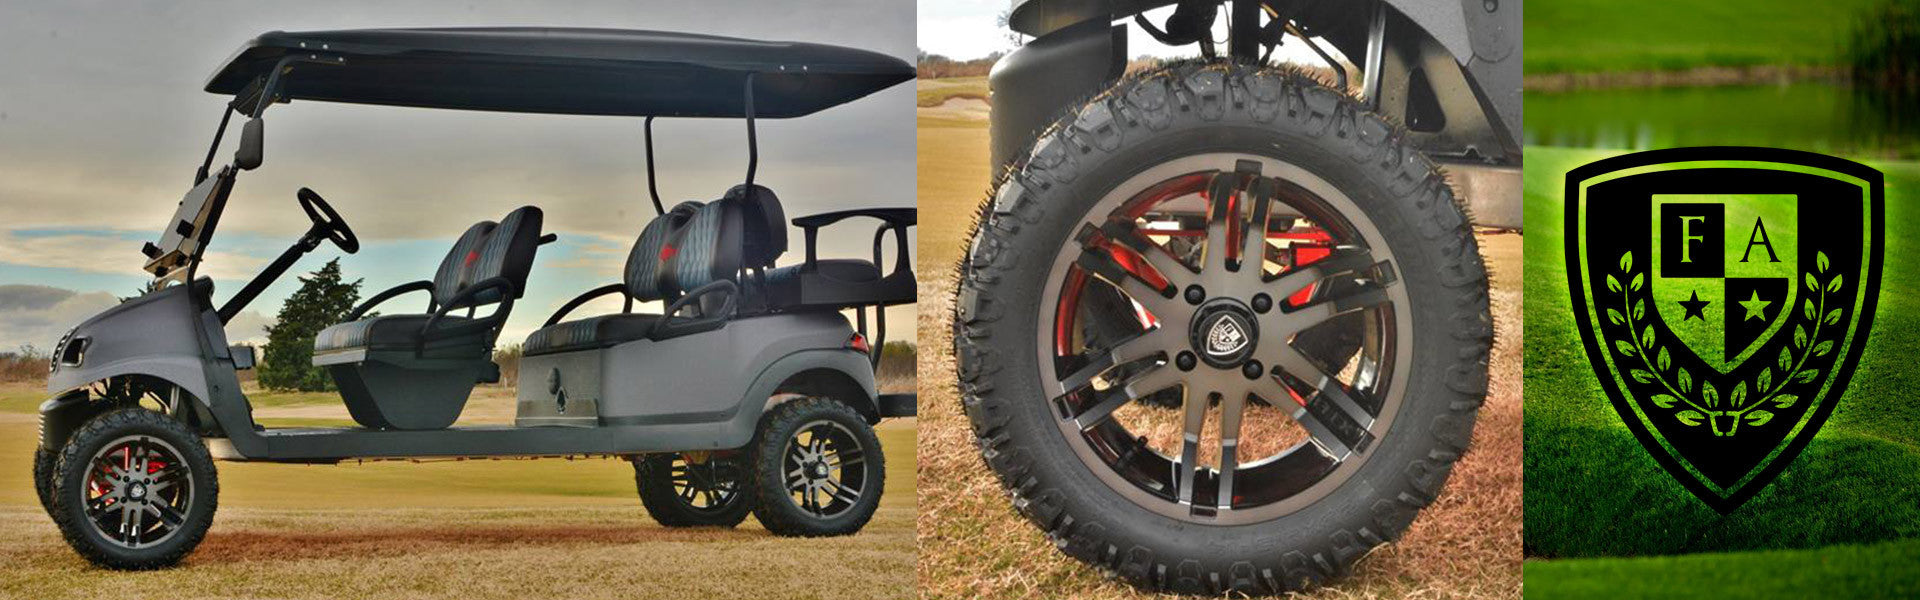 Fairway Alloys Golf Cart Wheels and Tires